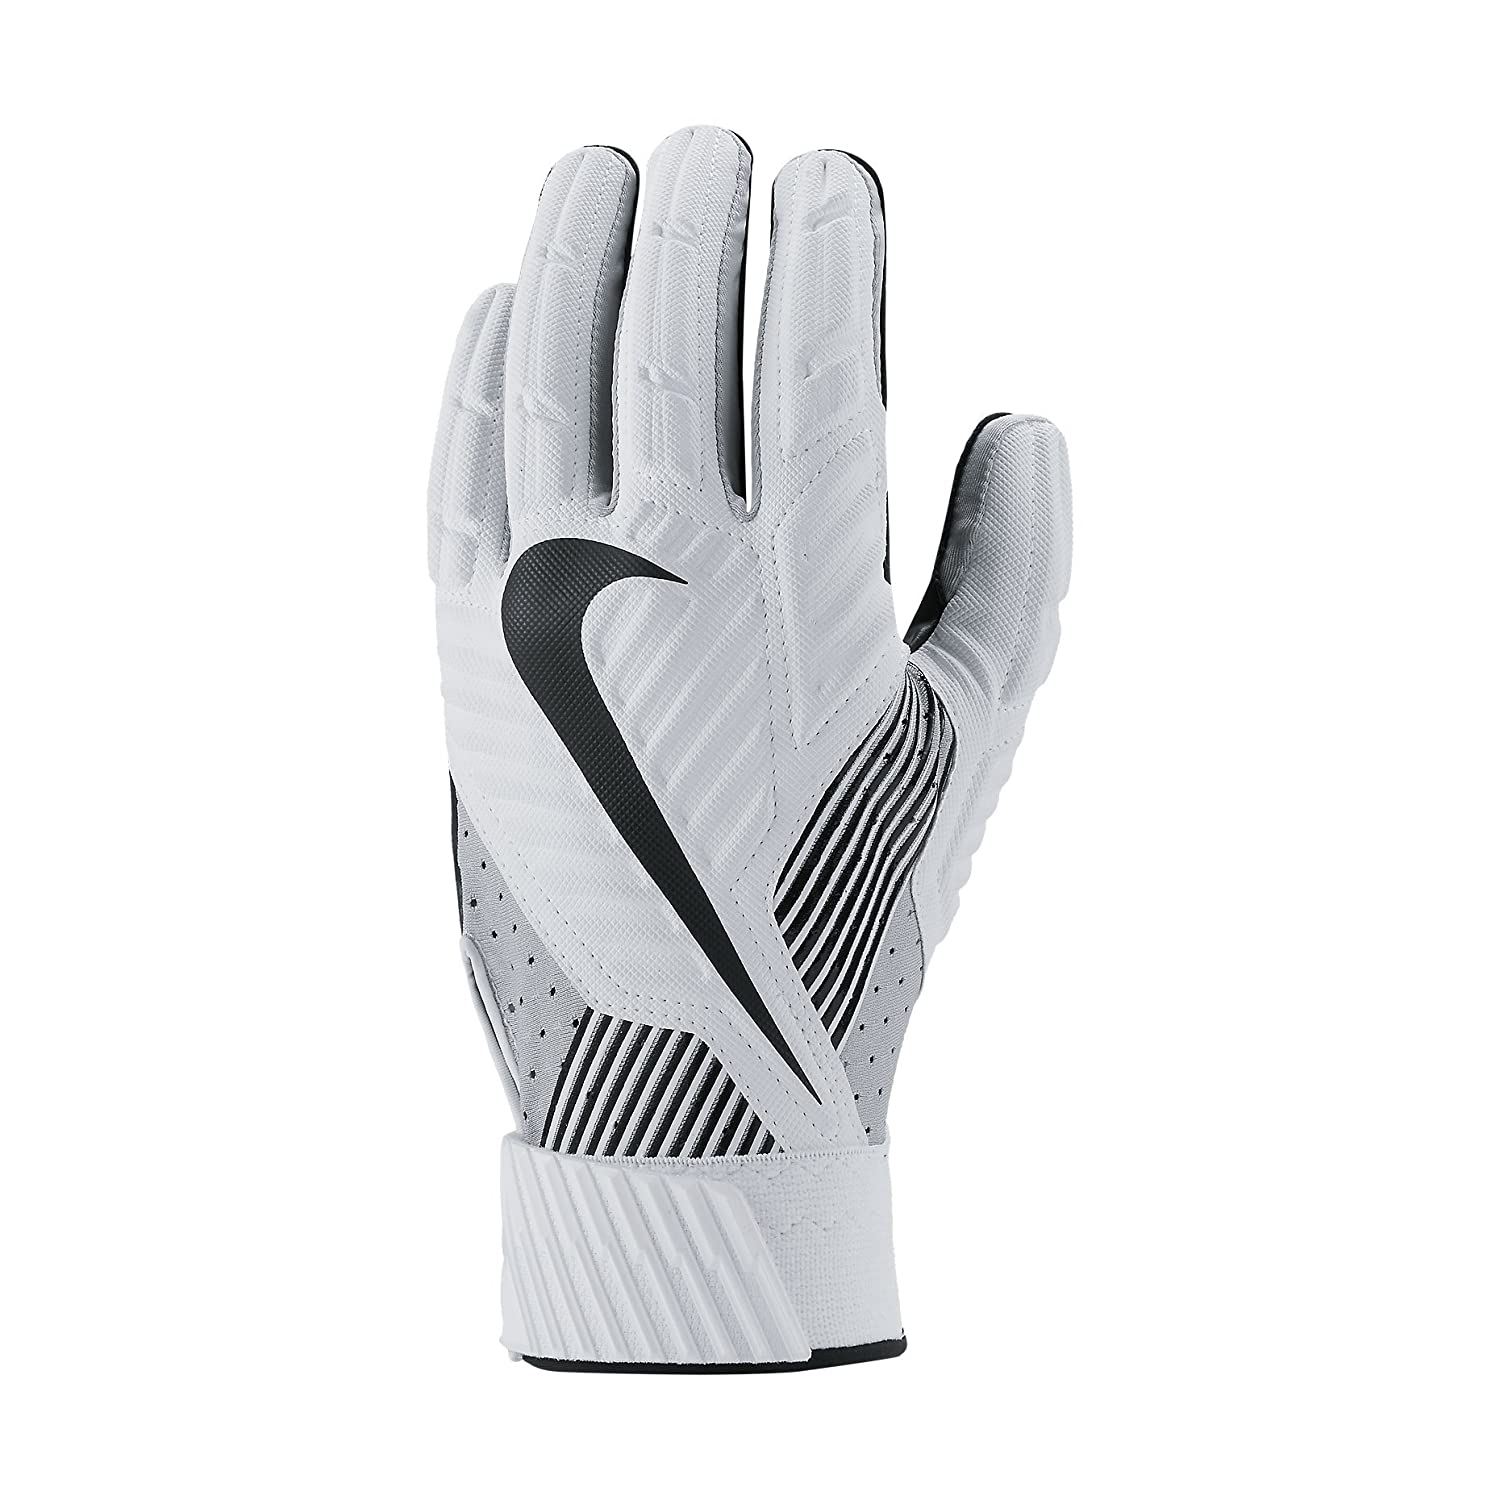 cool lineman gloves